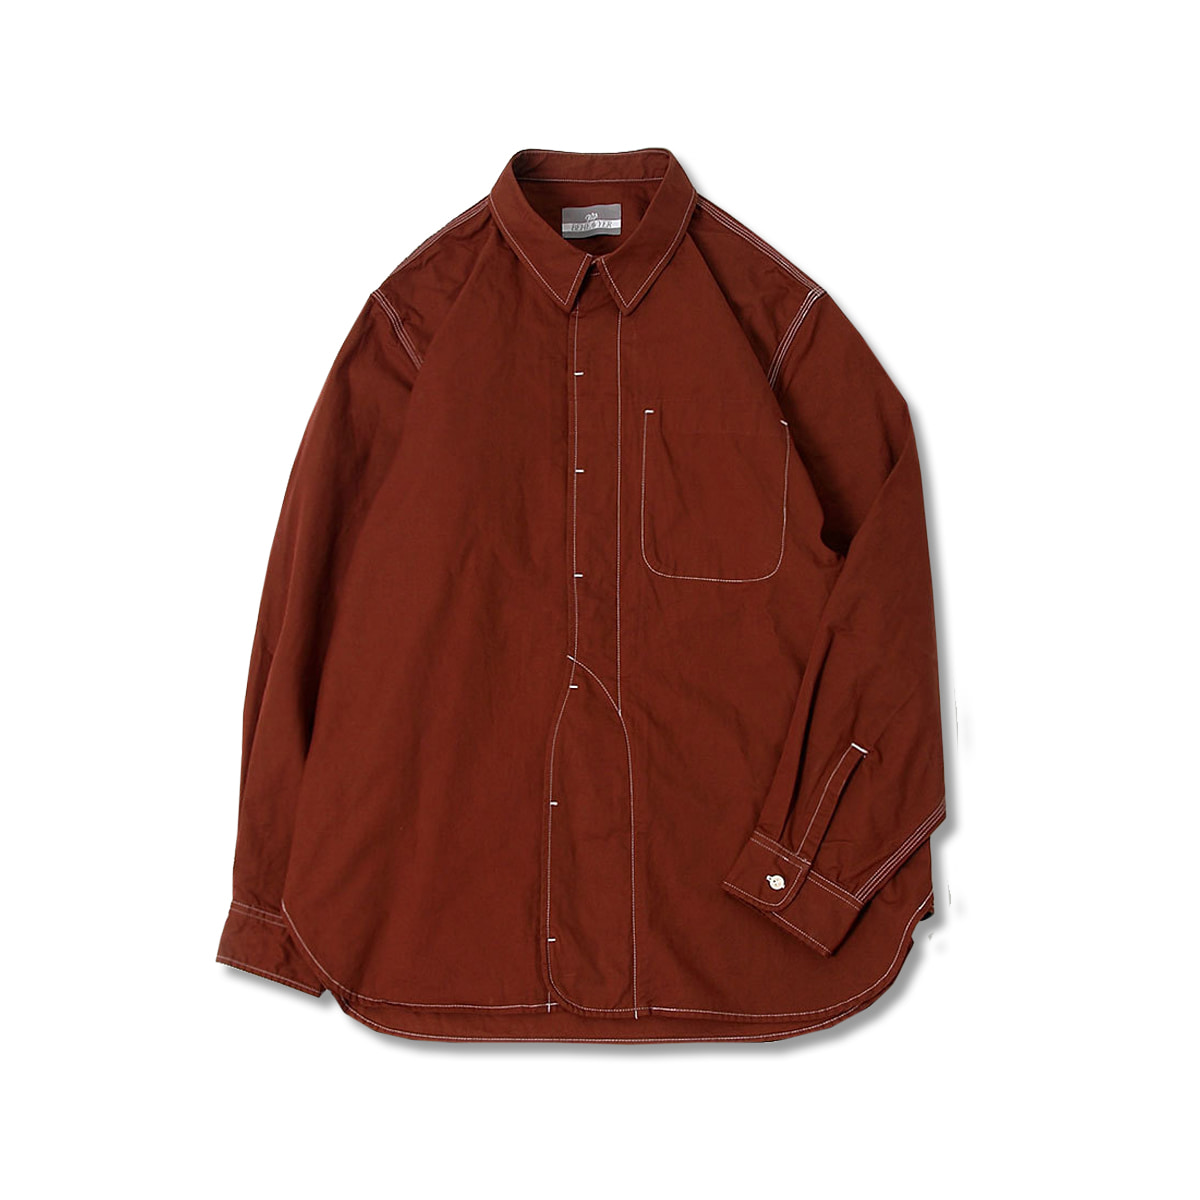 [BEHEAVYER] 1 1/2 SHIRT 'BROWN'